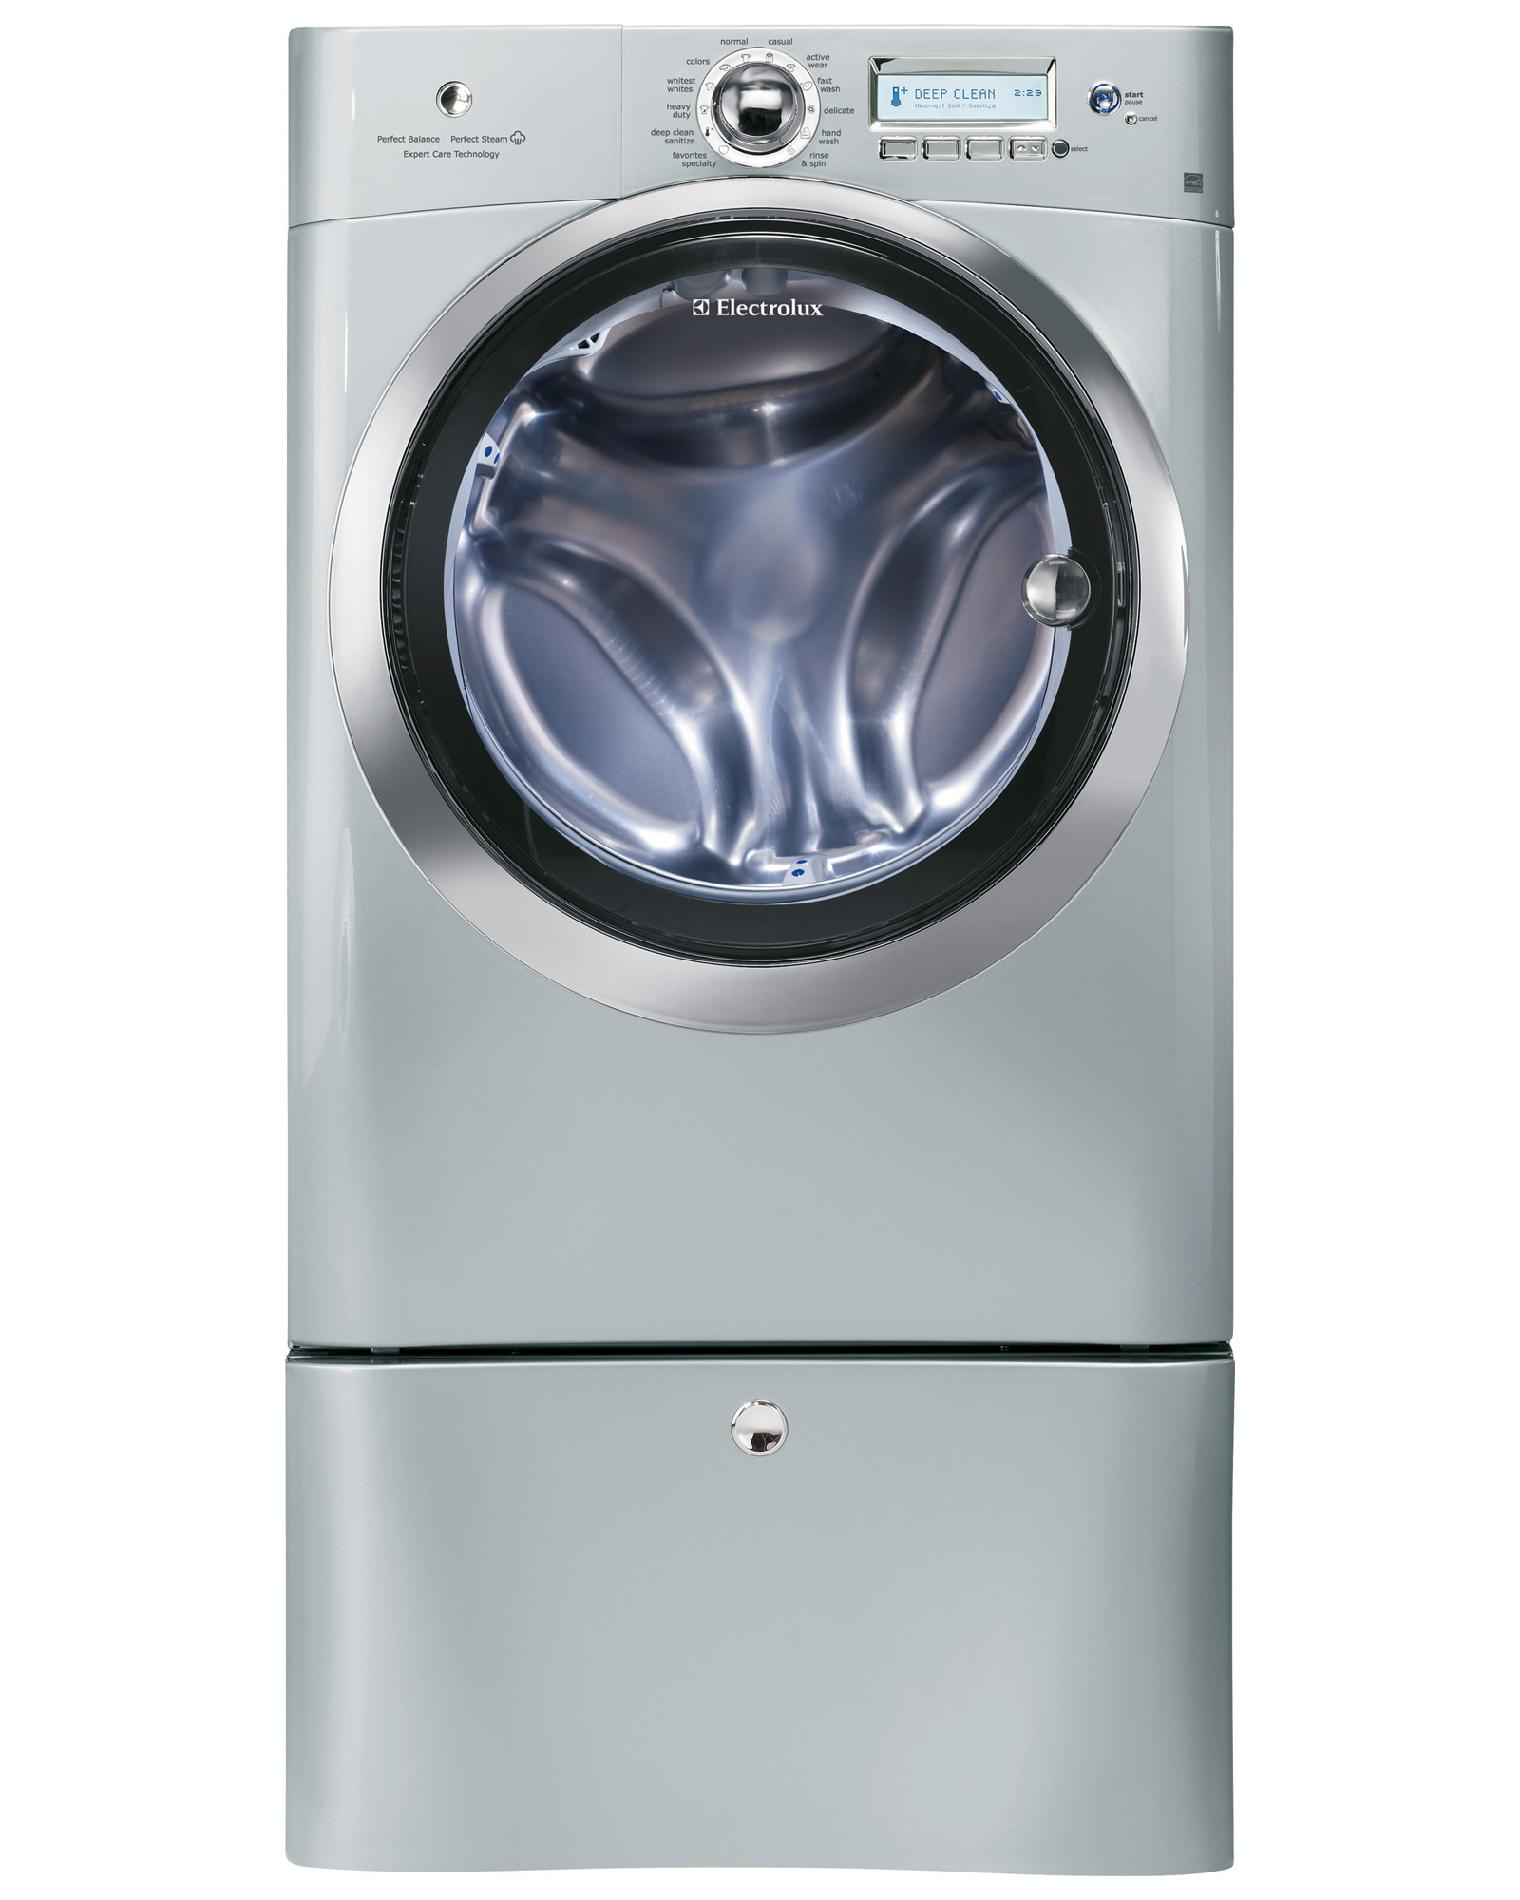 Electrolux 4.4 cu. ft. Steam Front-Load Washing Machine - Silver Sands